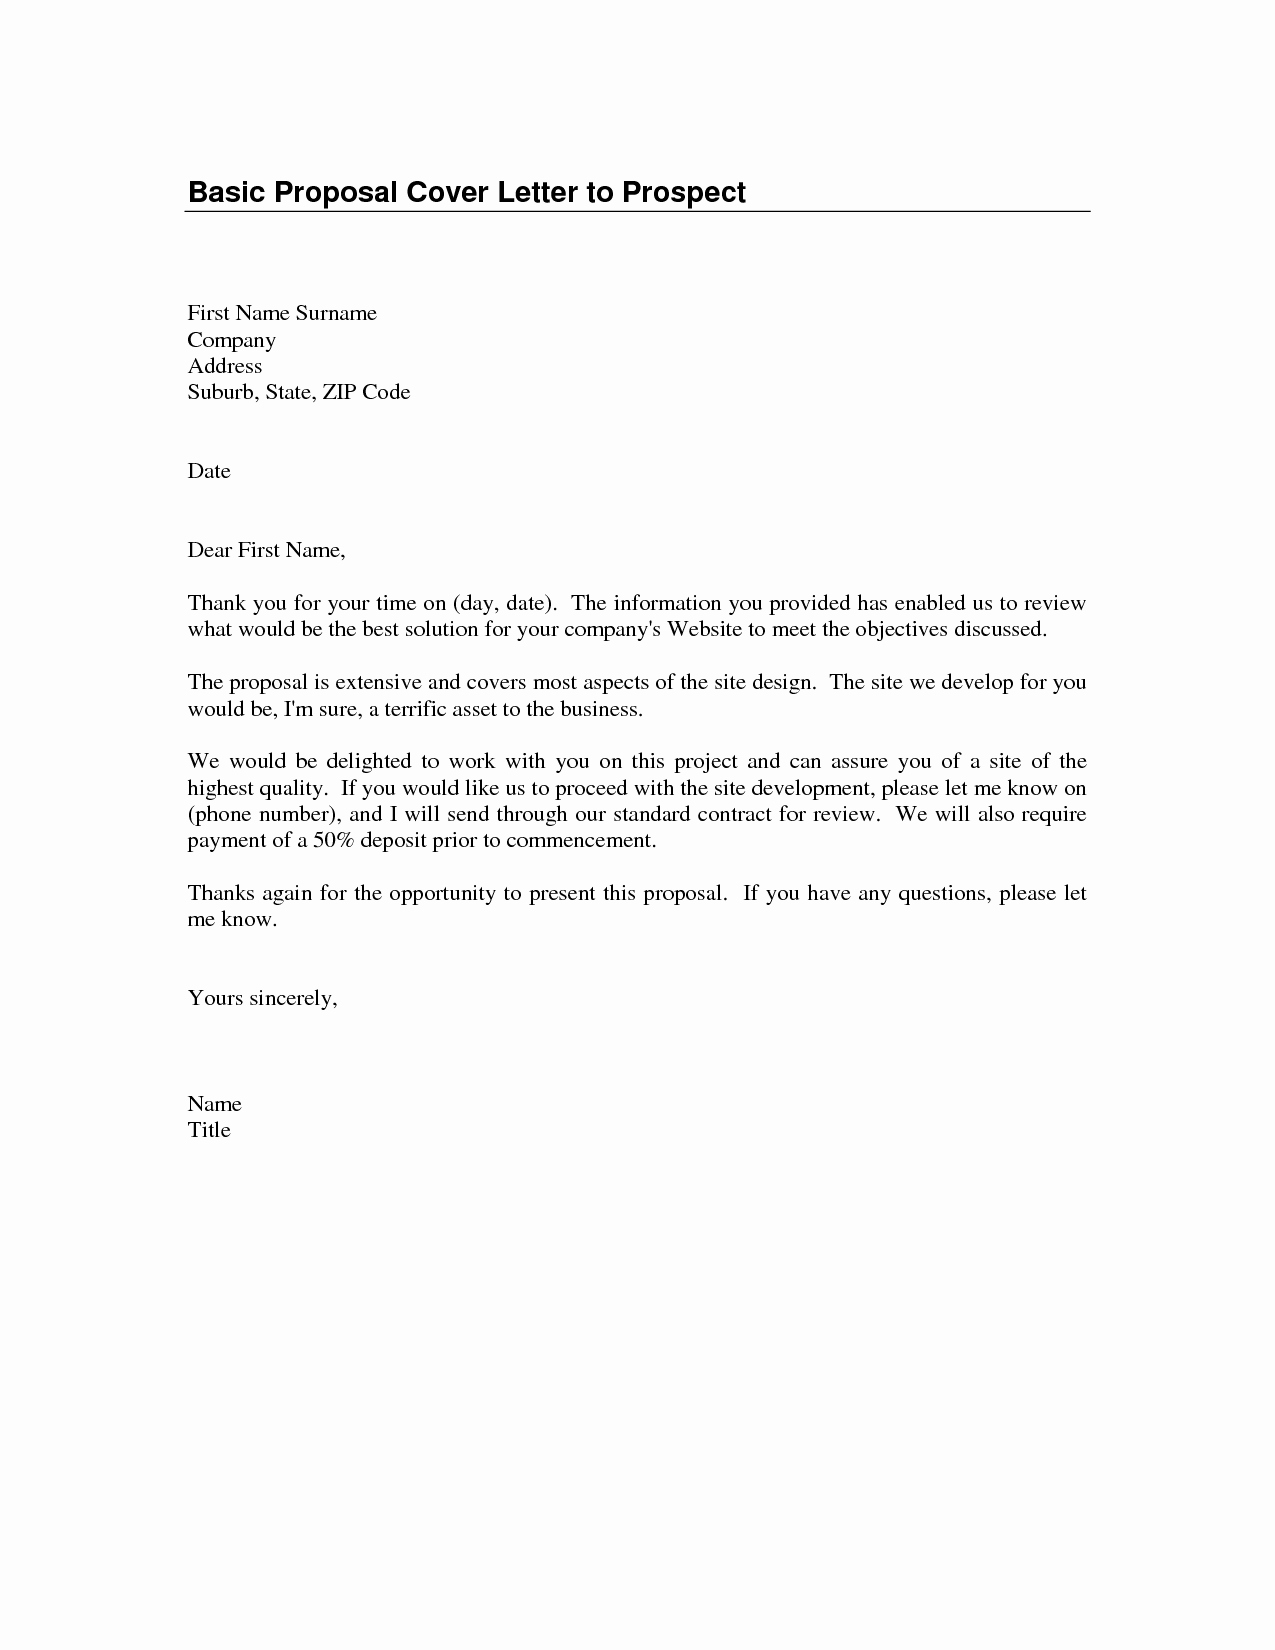 Simple Cover Letter Sample Luxury Basic Cover Letter Sample Basic Cover Letters Free